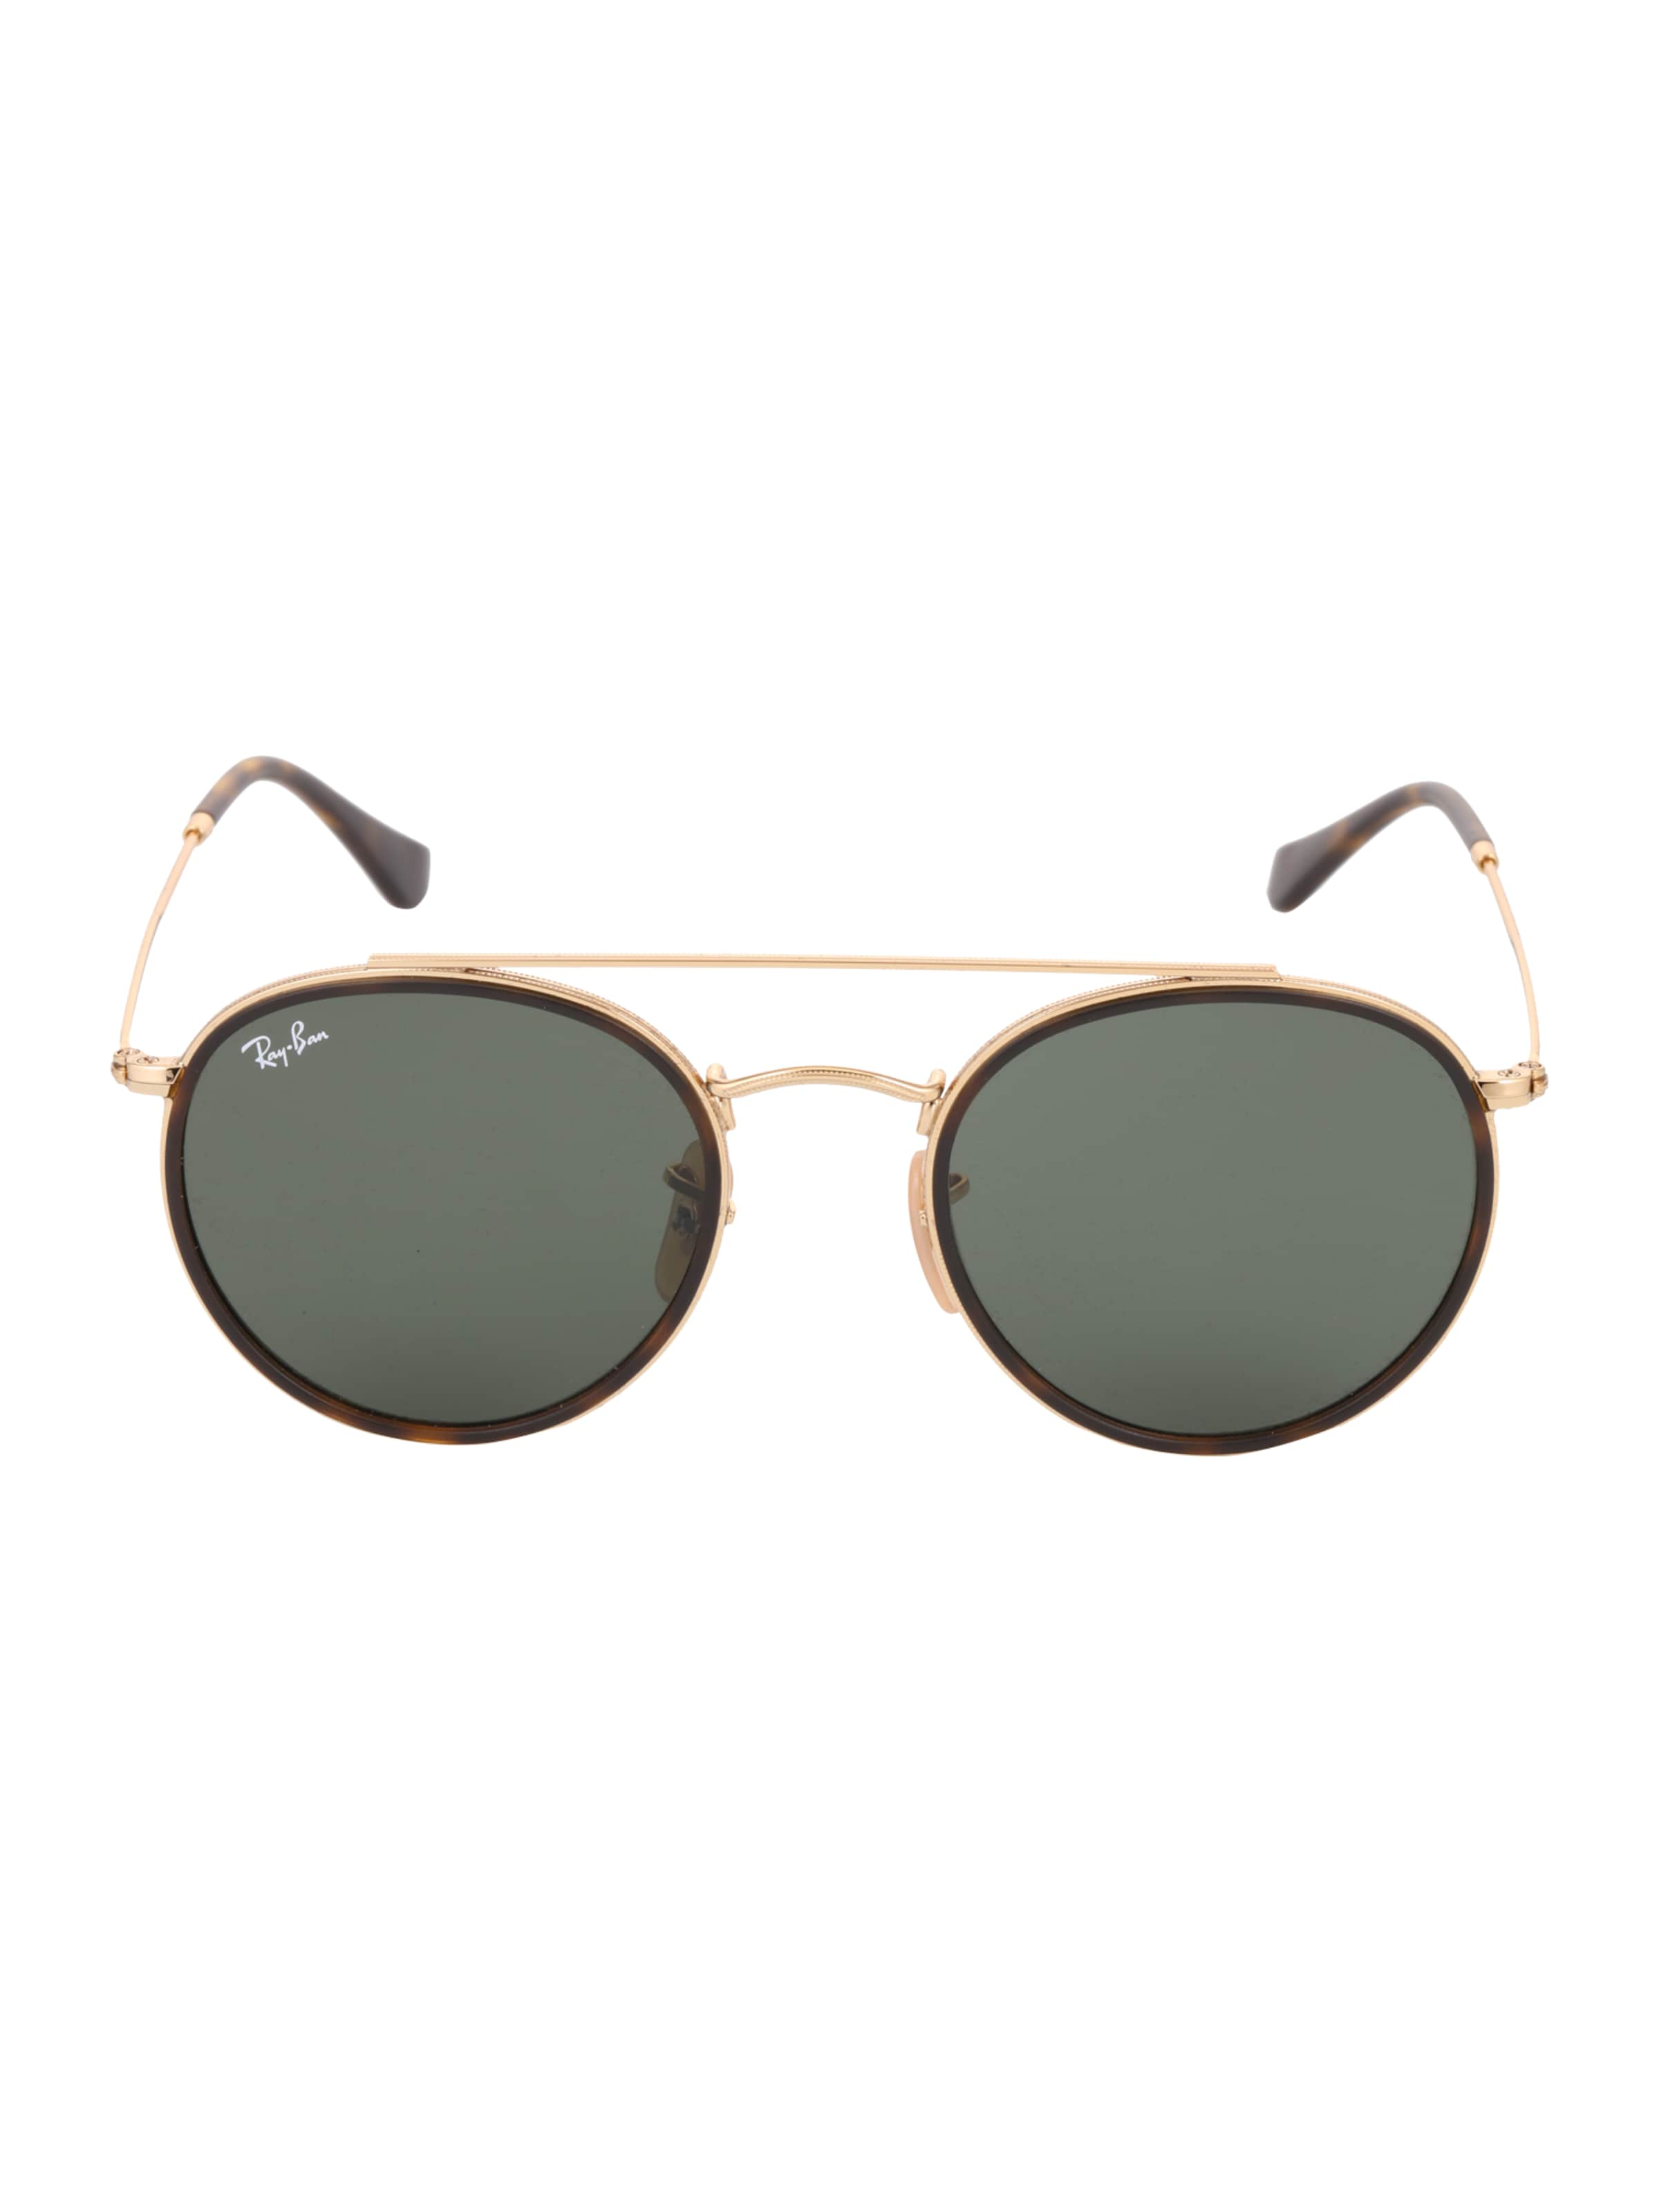 GoudGroen Ray ban In ban In Ray Zonnebril GoudGroen In Zonnebril ban Zonnebril Ray hCtsdrxQ